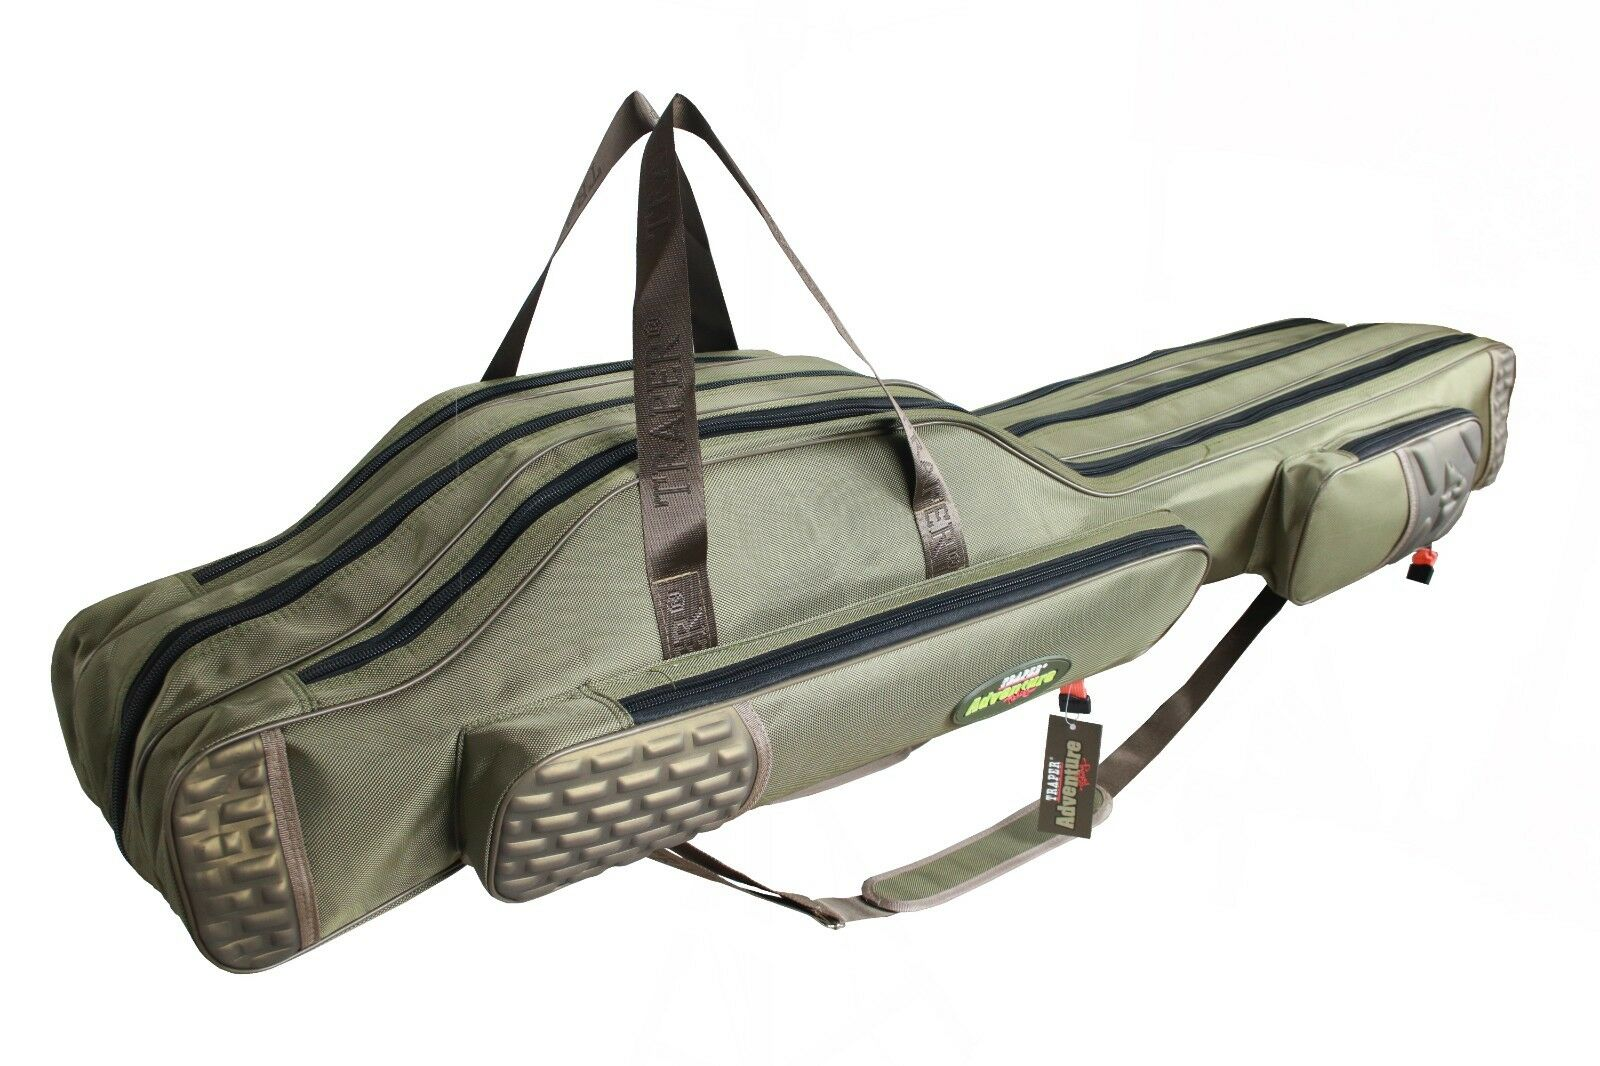 Reinforced Rod Bag Traper  Adventure I Rod Holdall 2 3 Compartments 140 160cm  brand